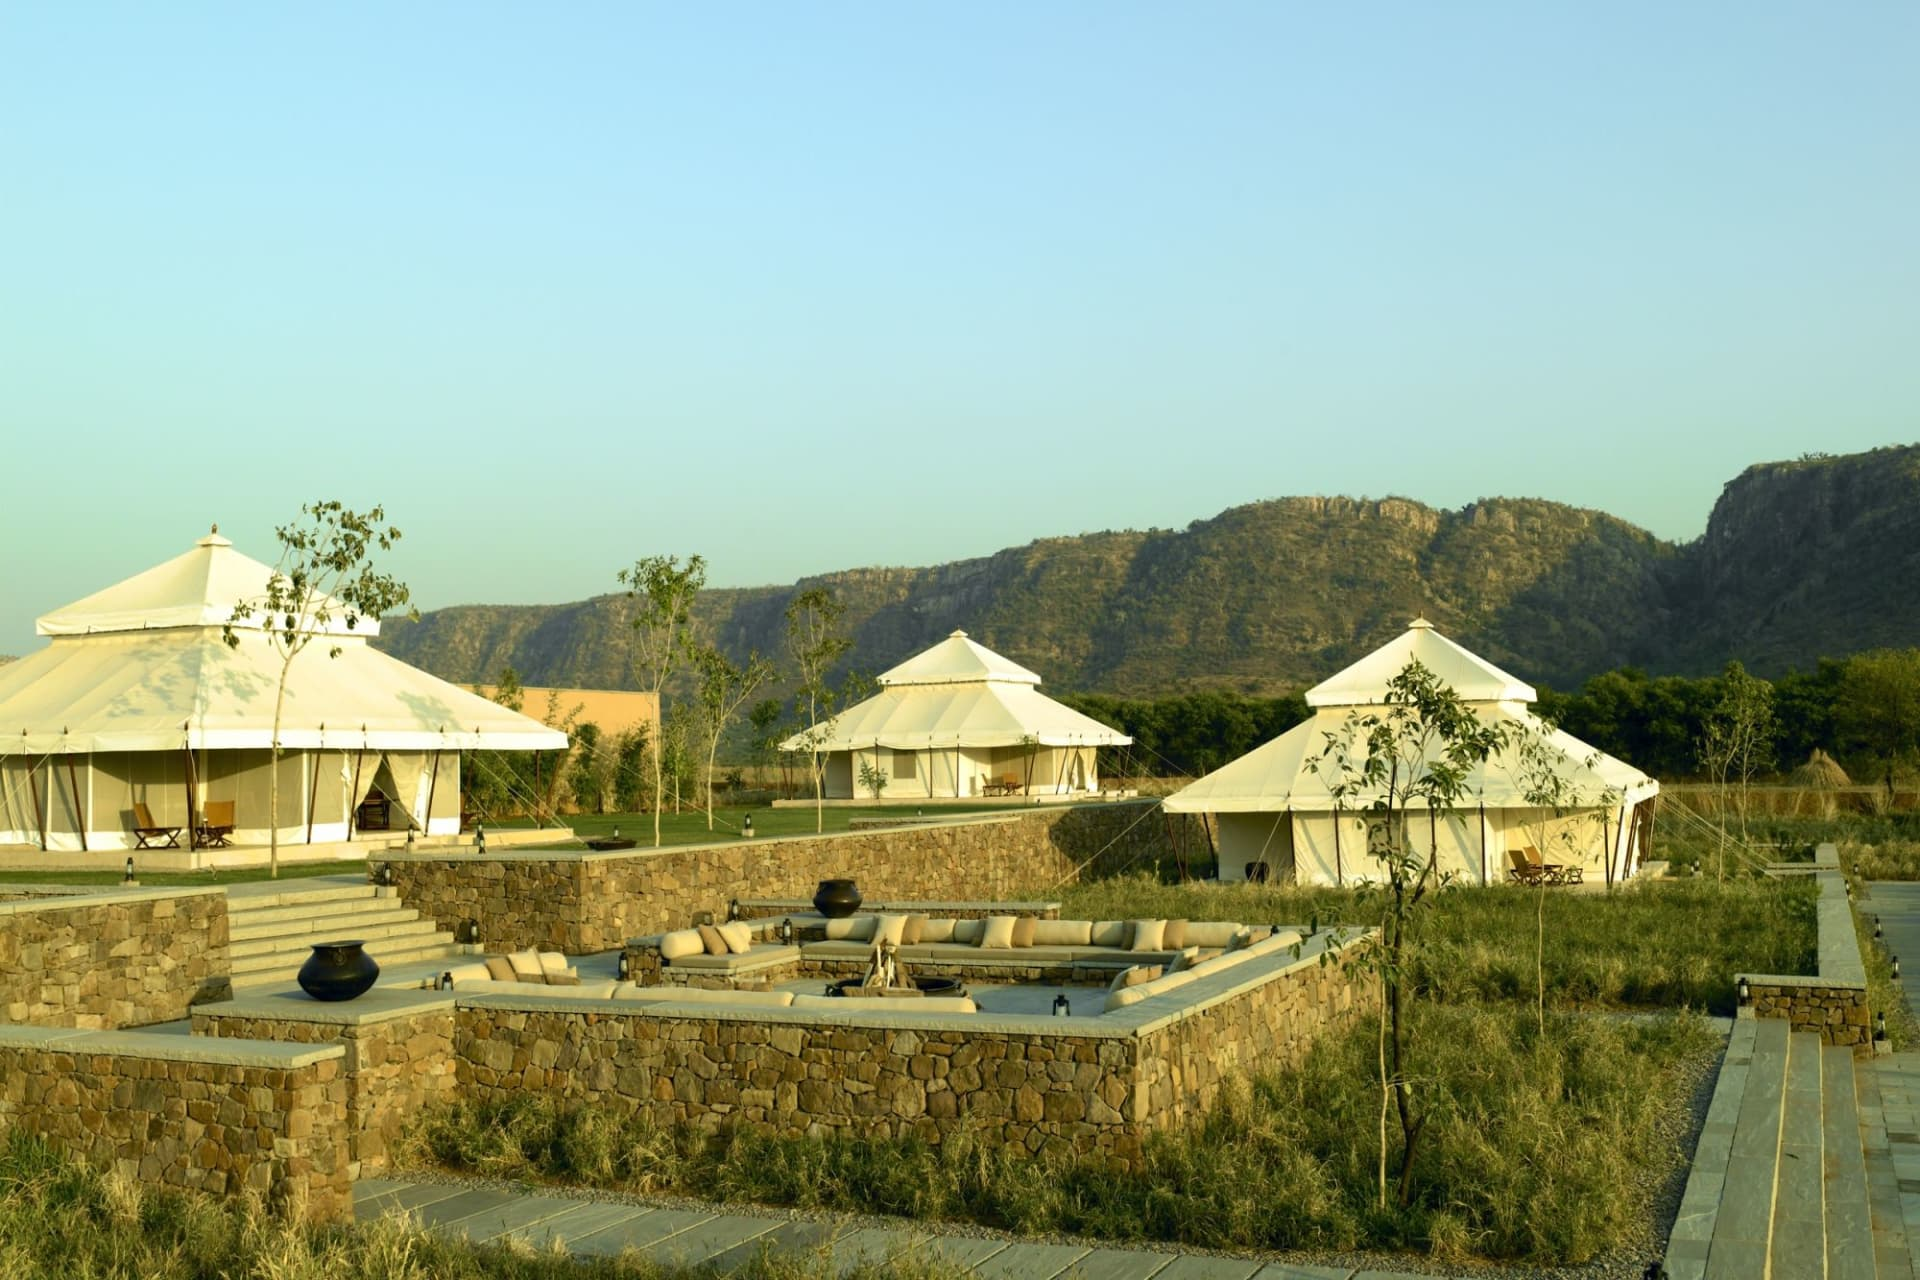 exterior: tents and aravalli hills